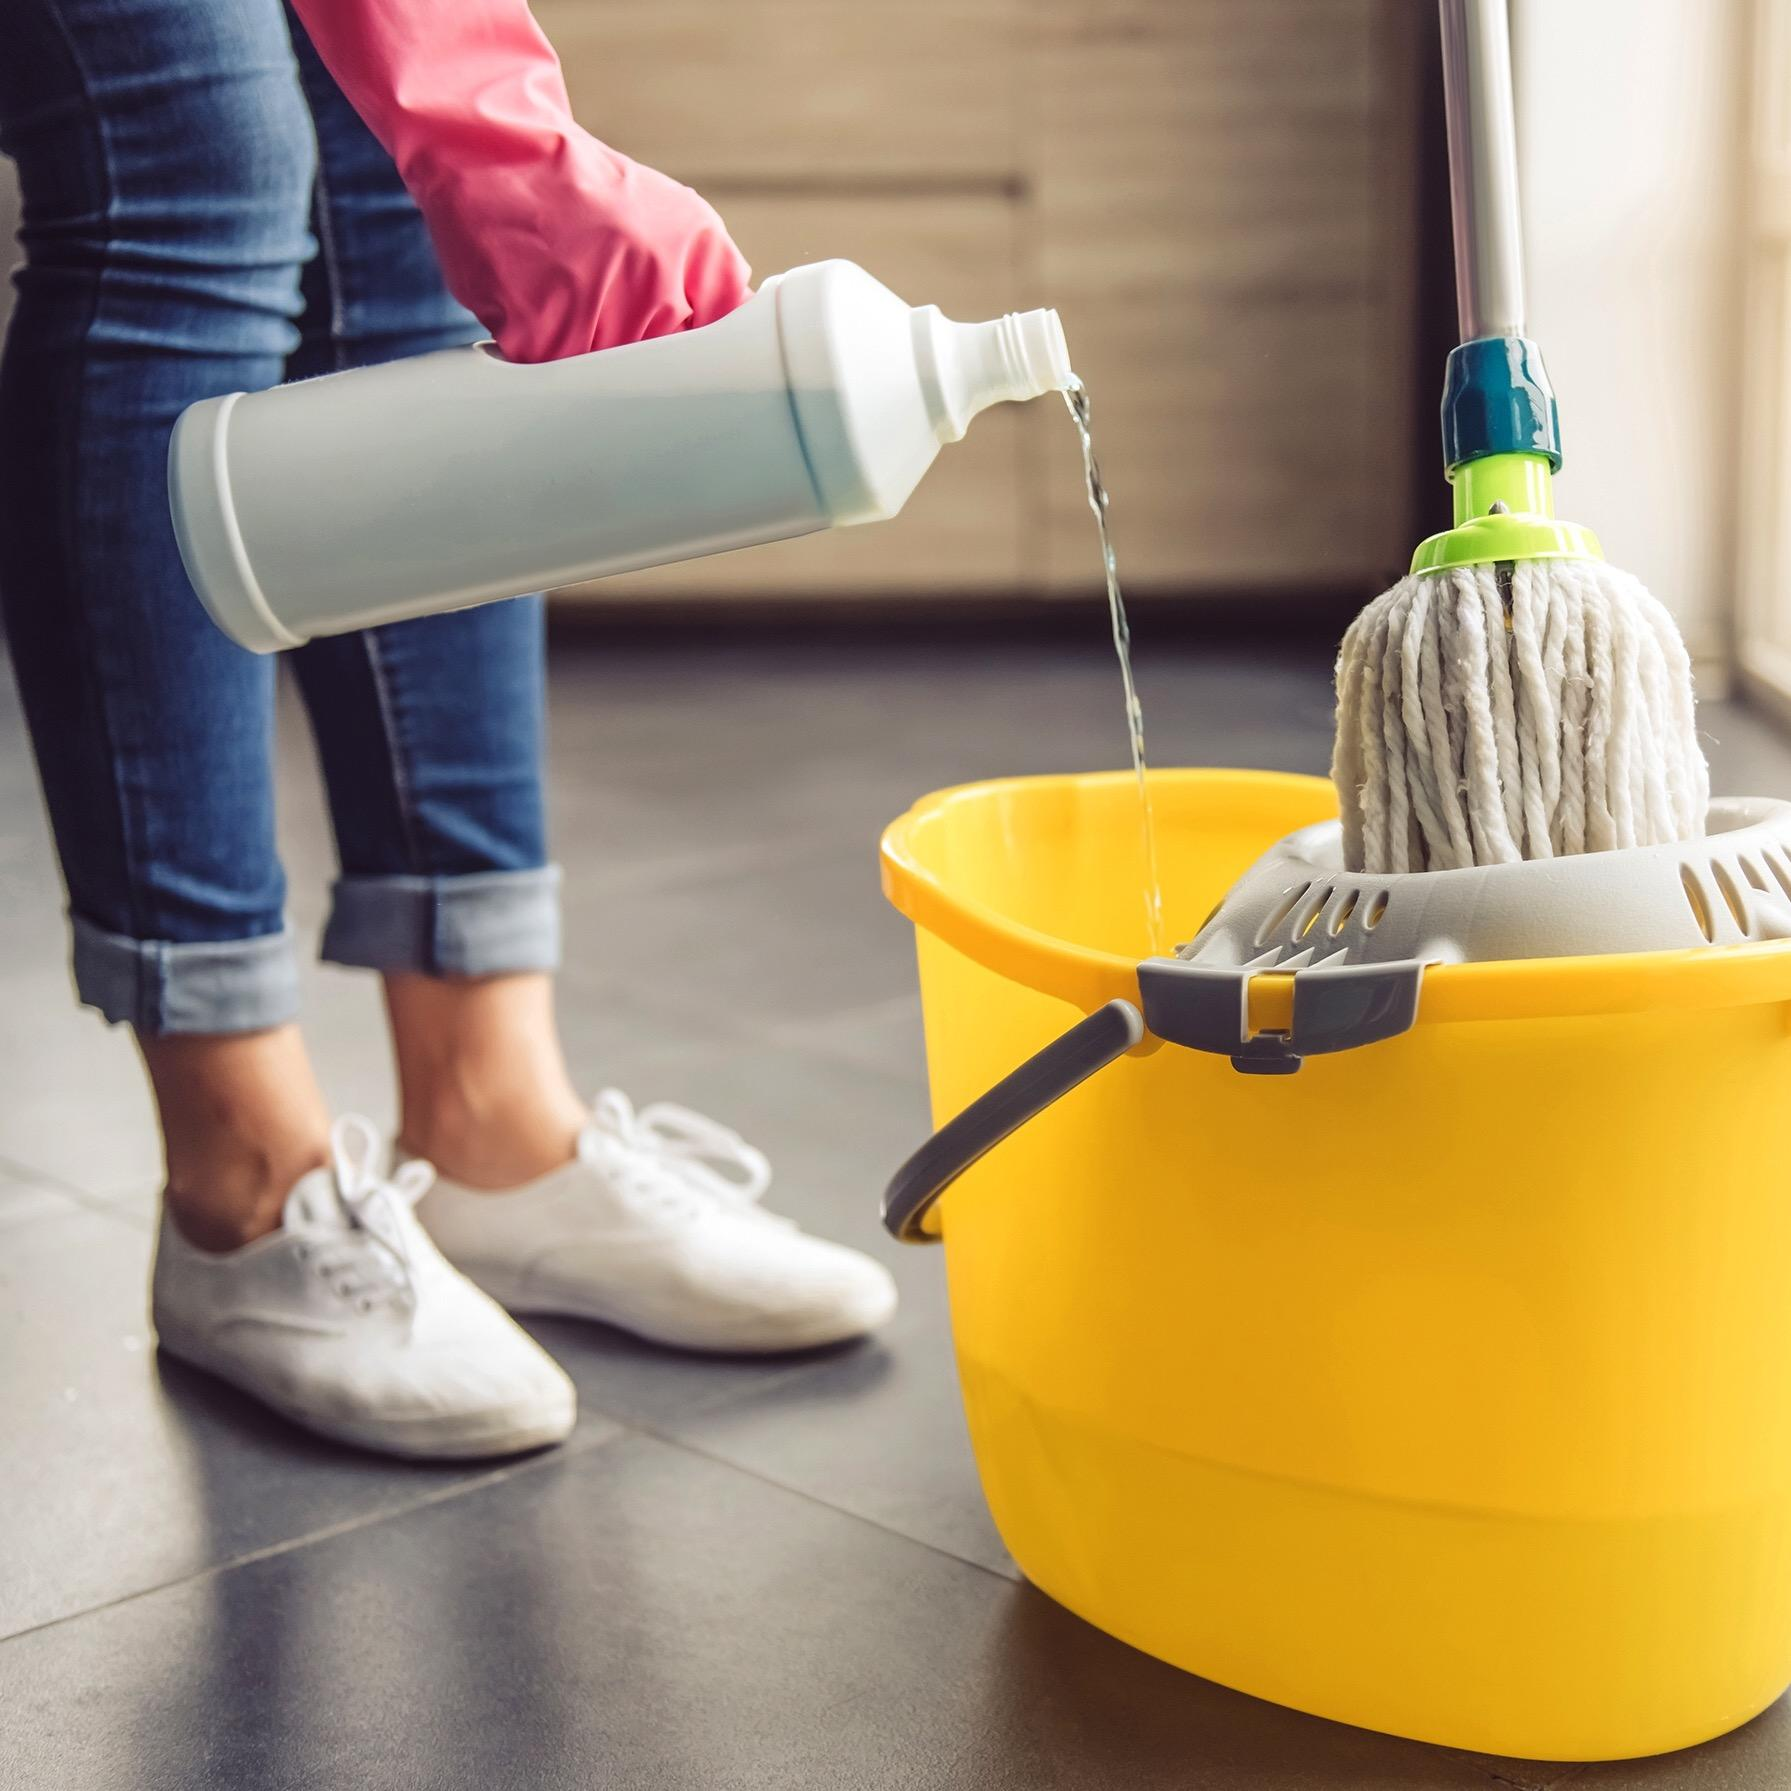 Denise's In-Home Cleaning Services